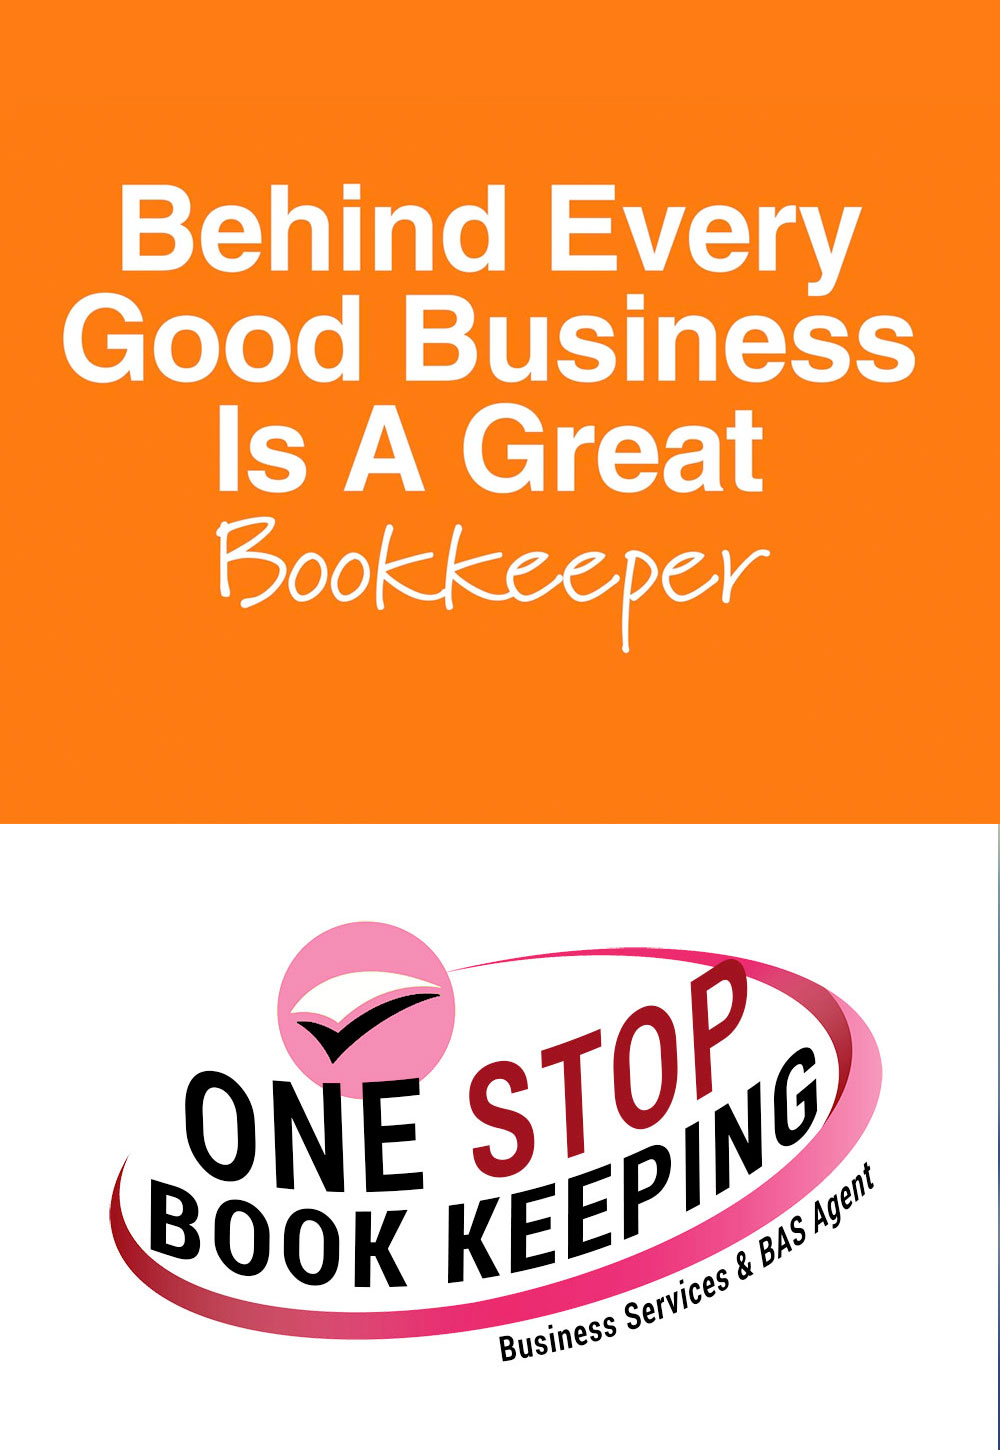 Great Bookkeeping!